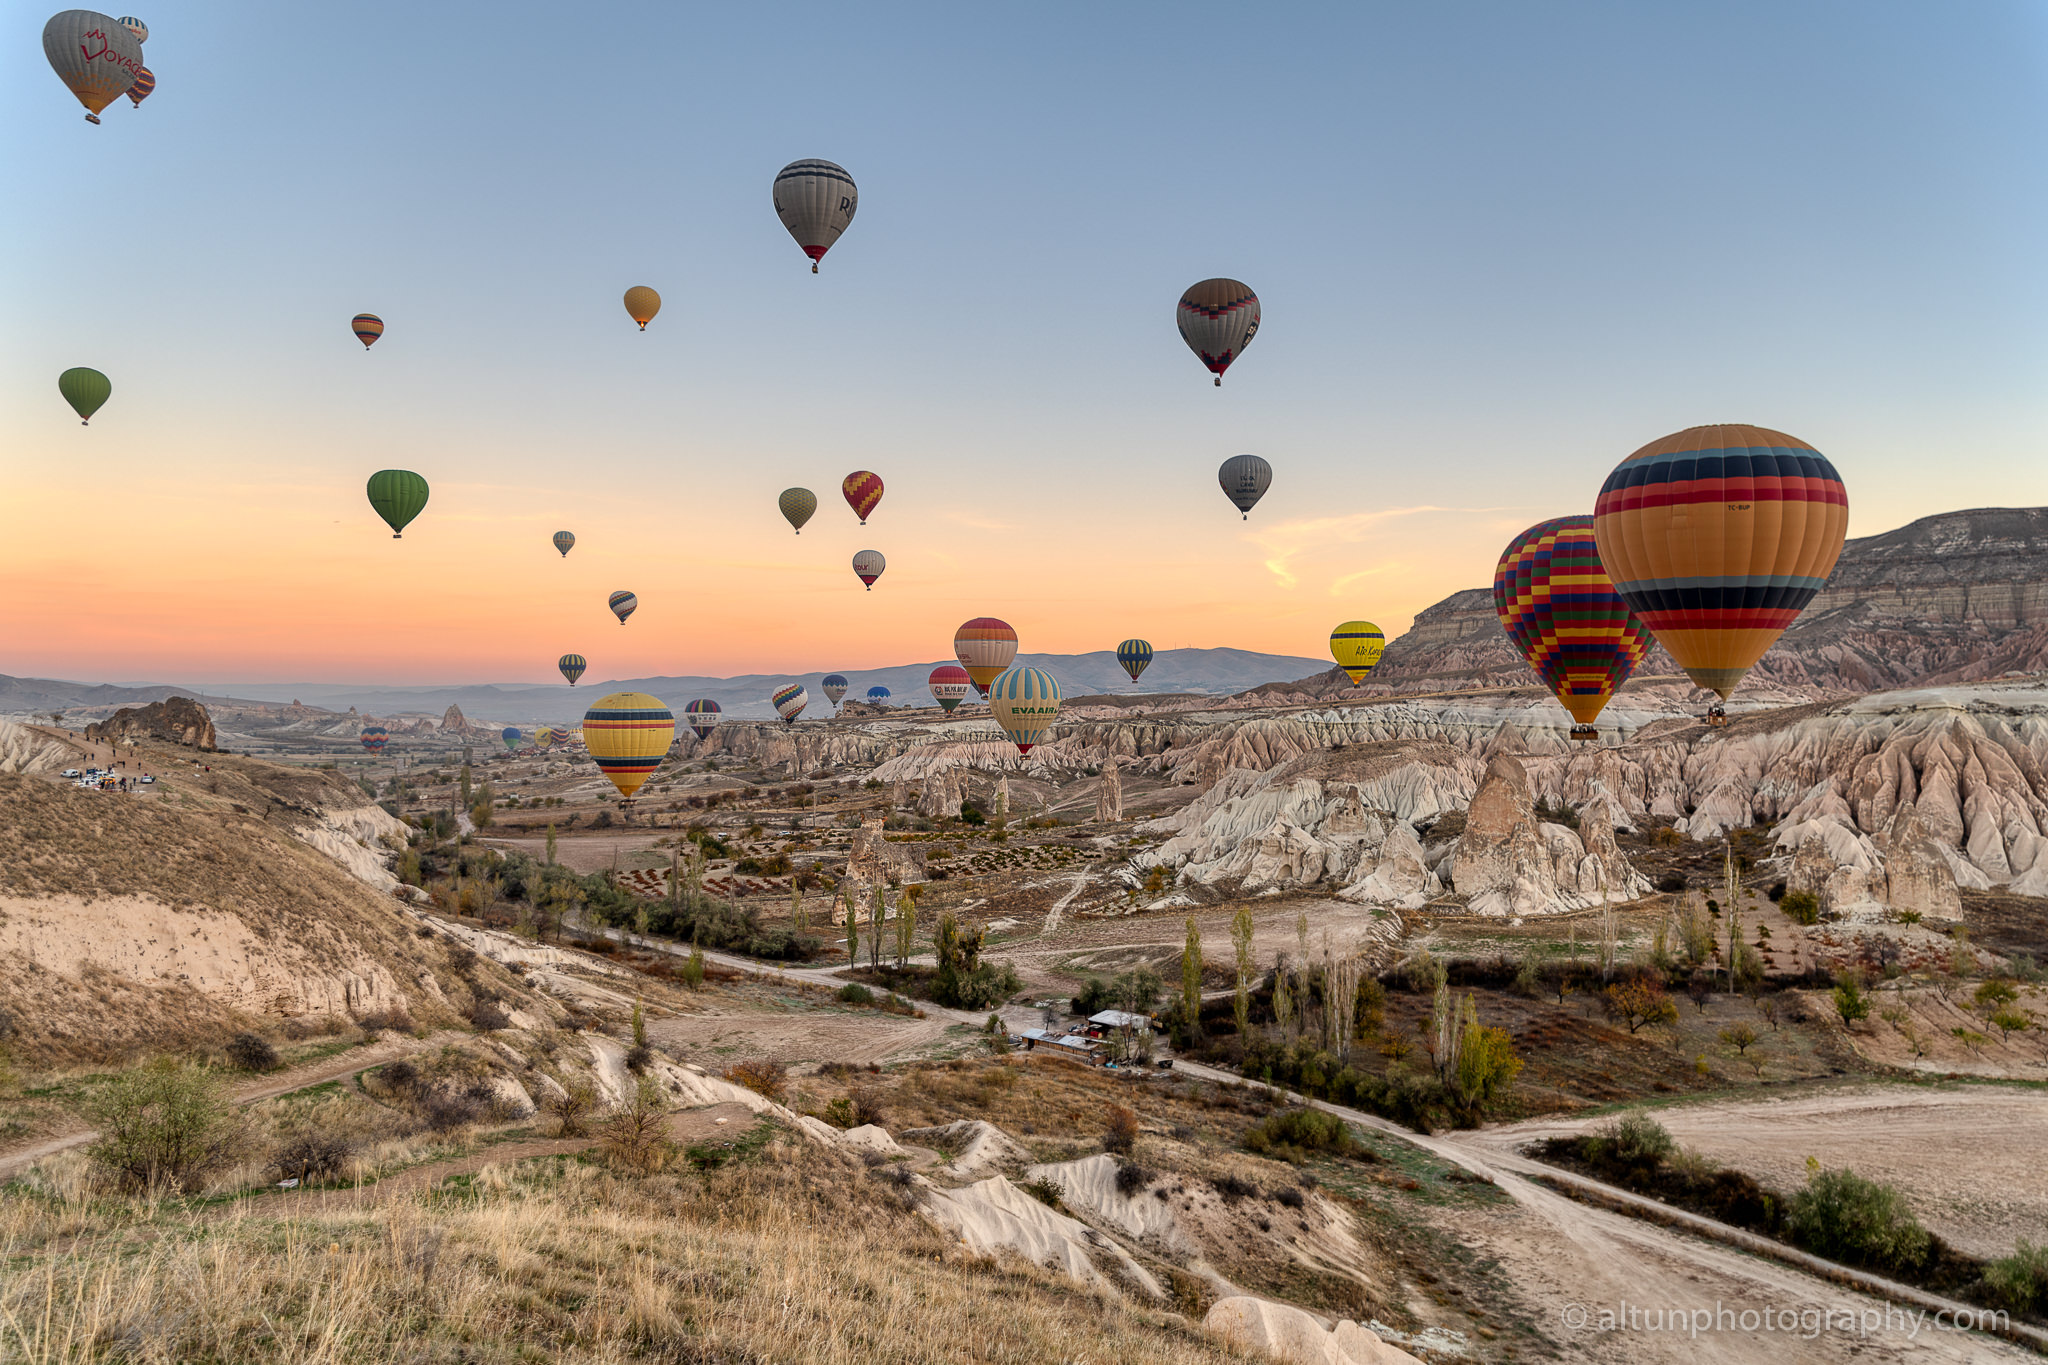 Cappadocia After editing